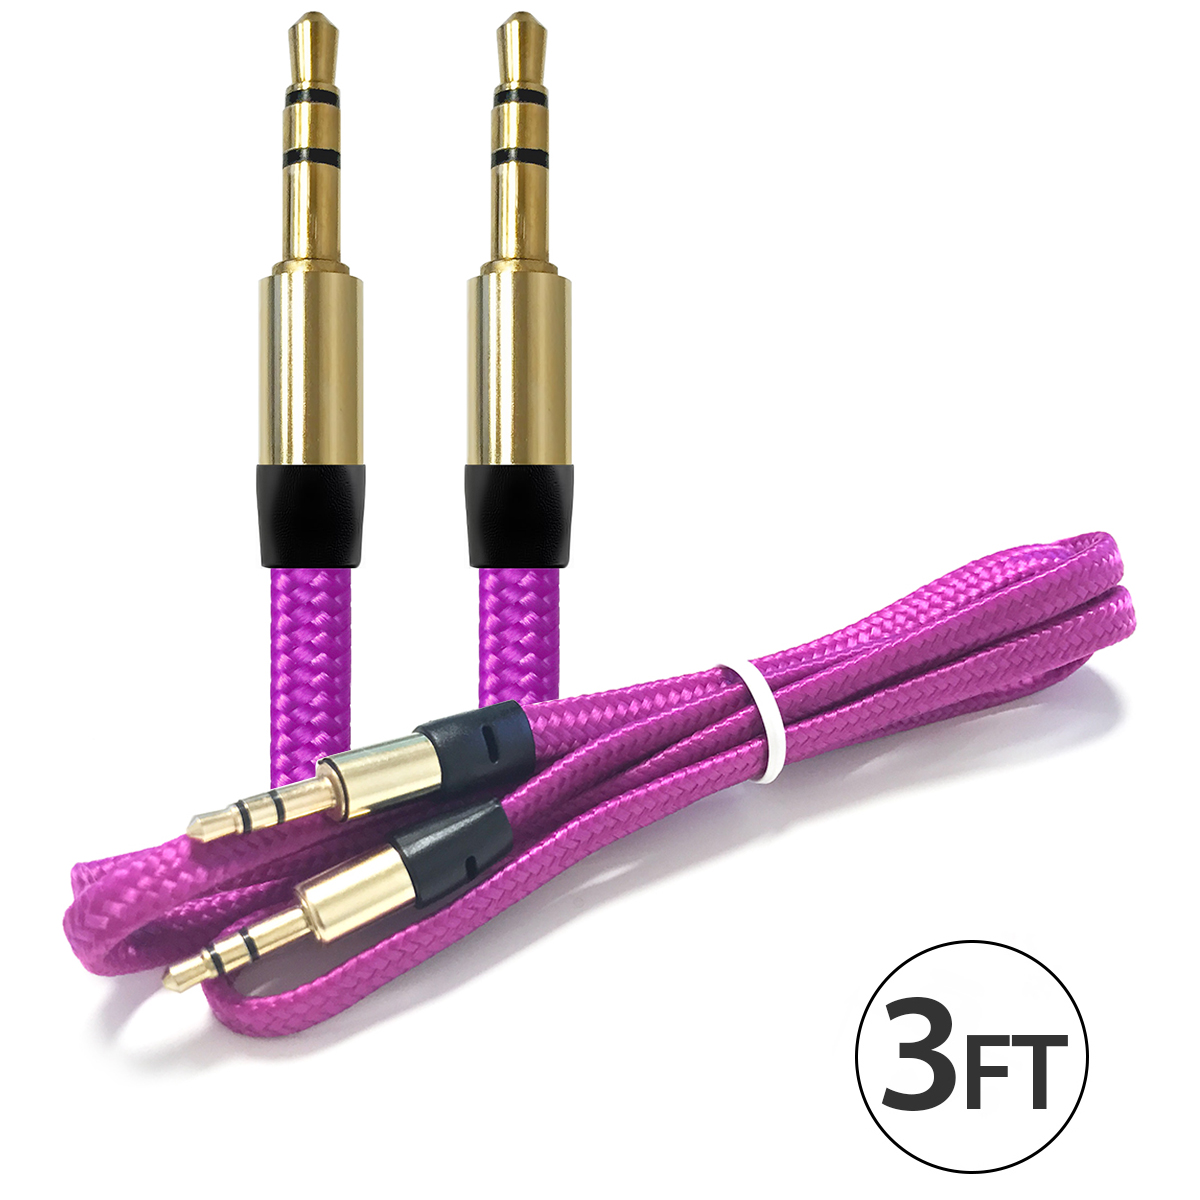 4x 3.5Mm Male To Male Audio Cable by FREEDOMTECH 3FT Universal Auxiliary Cord 3.5mm Male to Male Flat Nylon Braided Audio Aux Cable w/Aluminum Connector for iPods iPhone iPads Galaxy Home Car Stereos